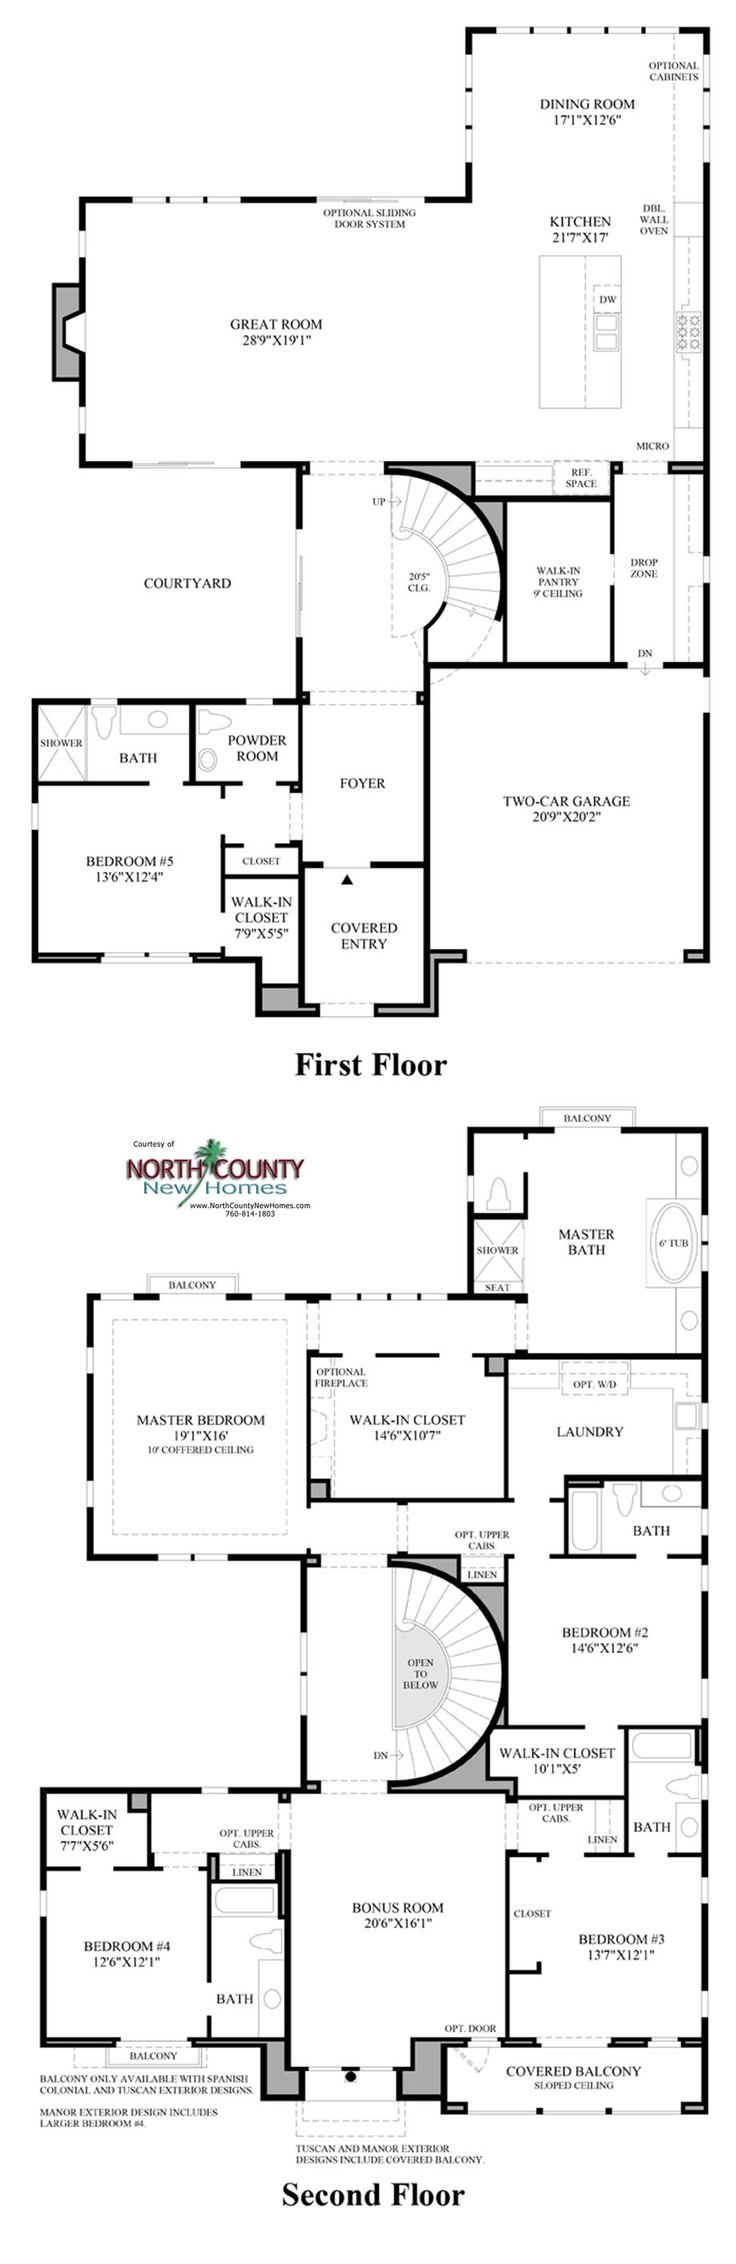 New Home Construction Plans best 25+ new home construction ideas on pinterest | building a new